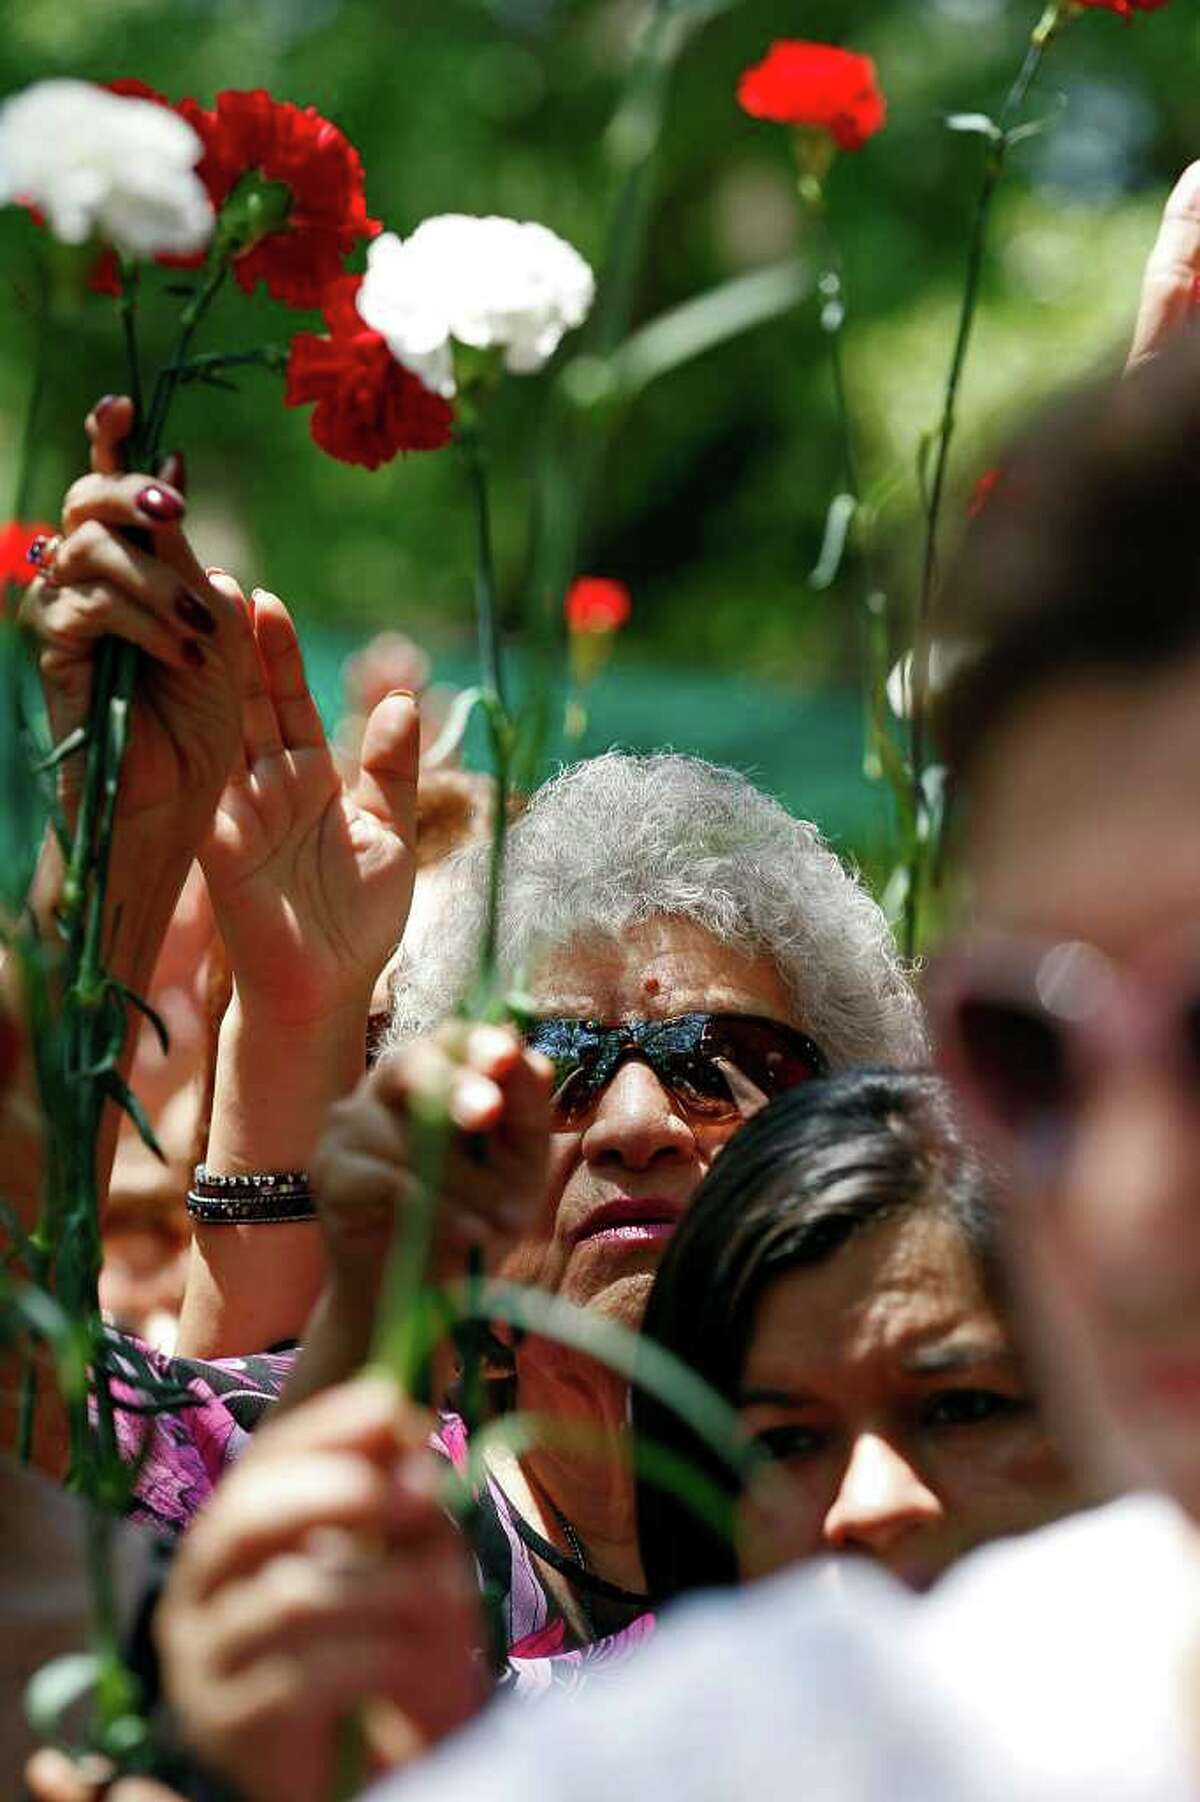 METRO - Alicia Anzaldua Salinas, 74, wearing glasses, holds up her carnation along with other mothers during a blessing after the Mother's Day Mass at Our Lady of Lourdes Grotto, Sunday, May 8, 2011. JERRY LARA/glara@express-news.net